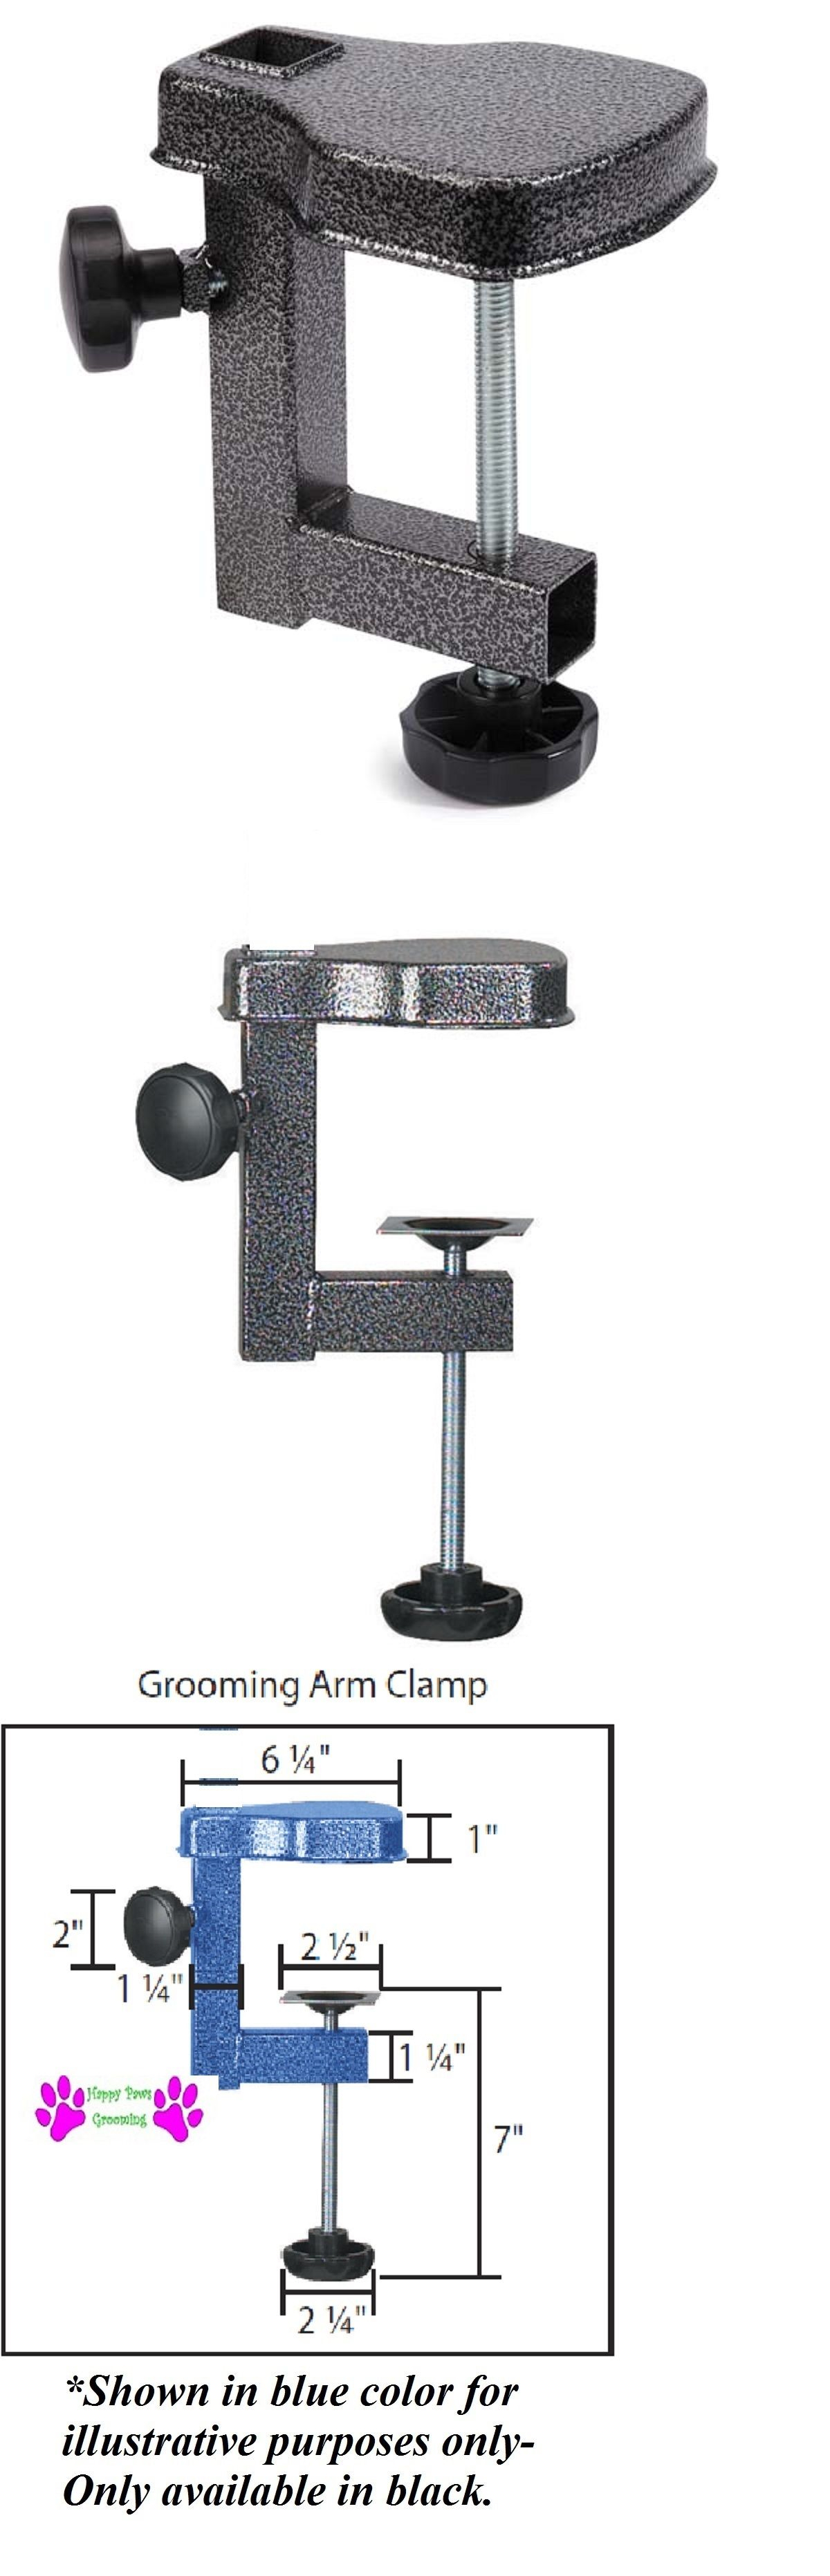 Grooming Tables 146241: Me Large Pro Heavy Duty Adjustable Clamp For Pet Dog Grooming Table Groomer Arm BUY IT NOW ONLY: $49.99